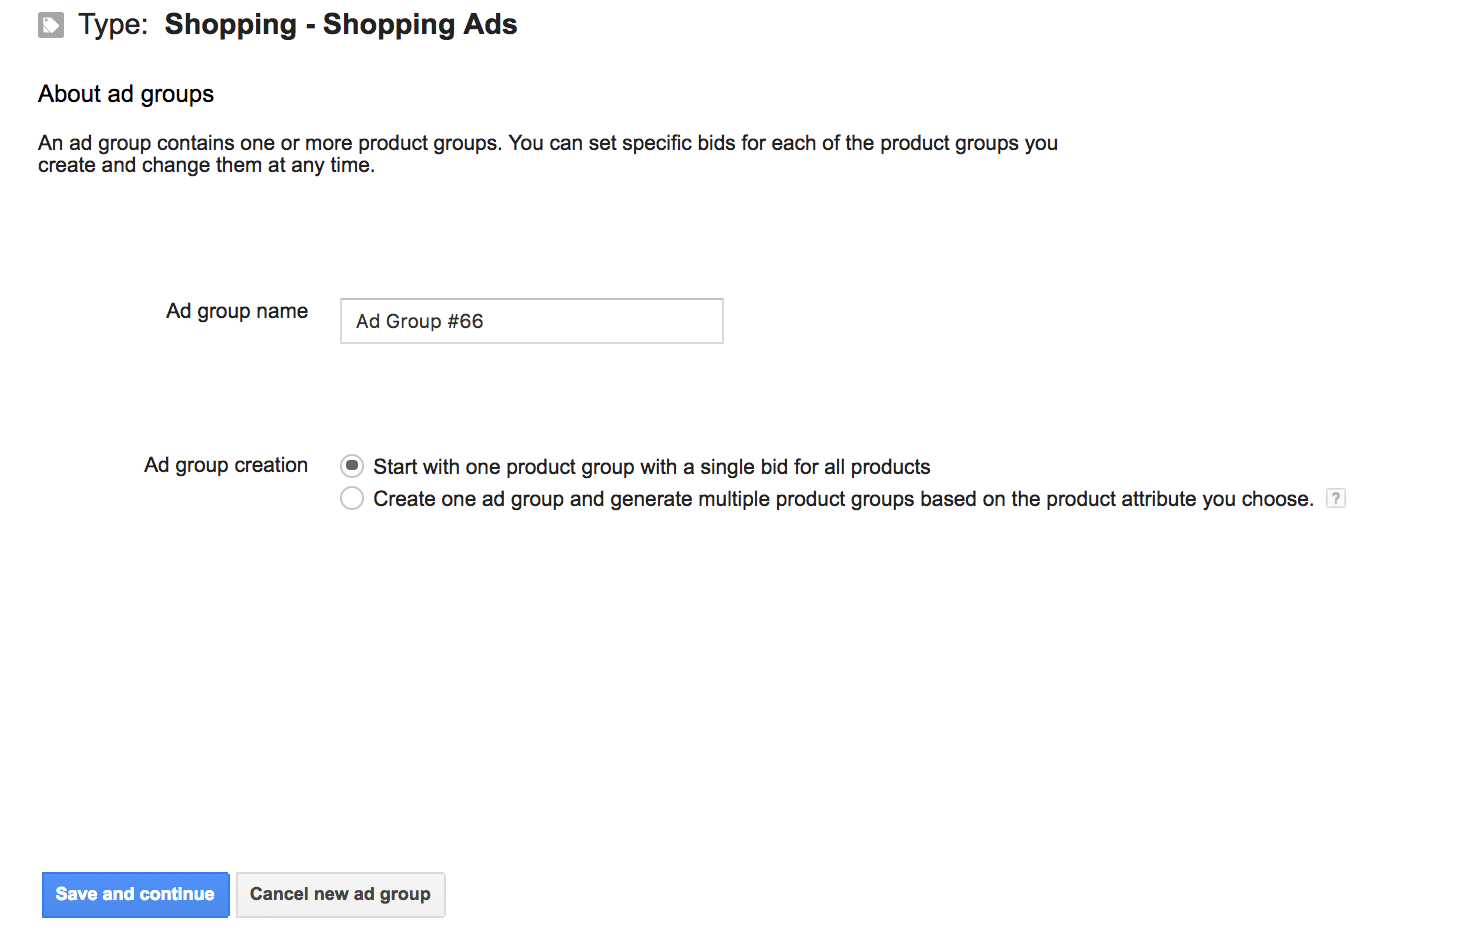 Google thinks we're going to have all products with one bid, but we're actually about to SPAG it.